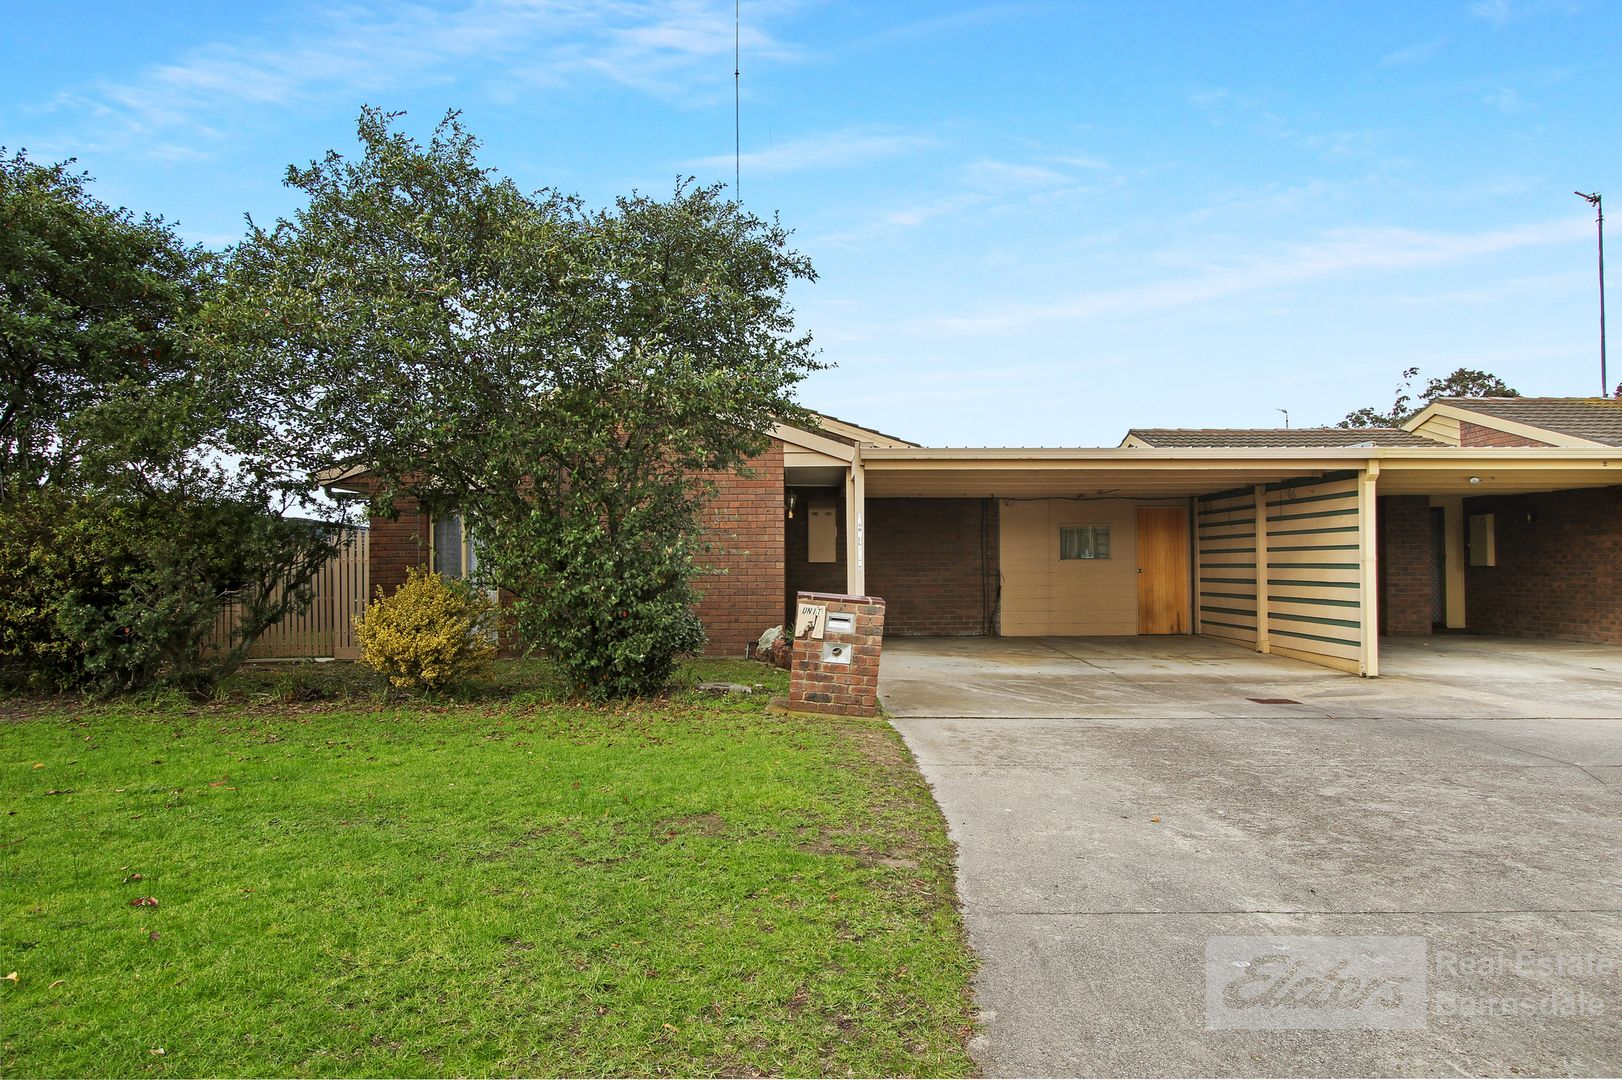 3/104 Wallace  Street, Bairnsdale VIC 3875, Image 1